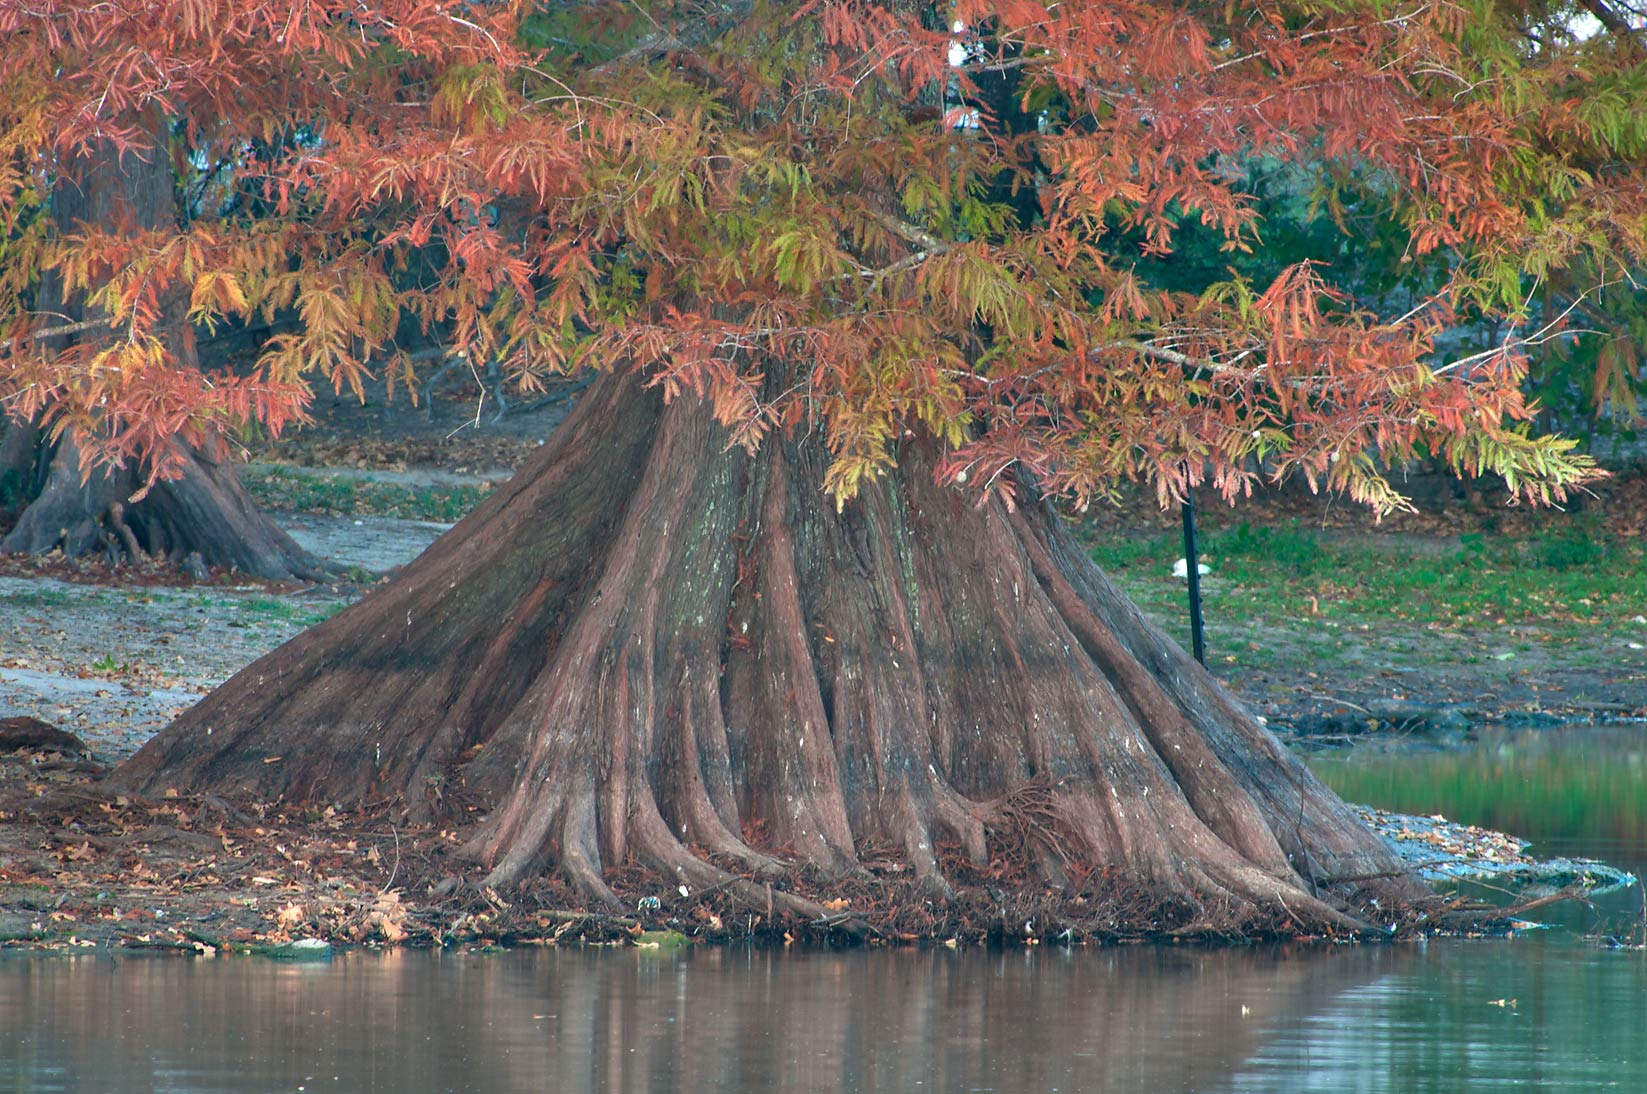 Bald cypress in a pond of Central Park. College Station, Texas